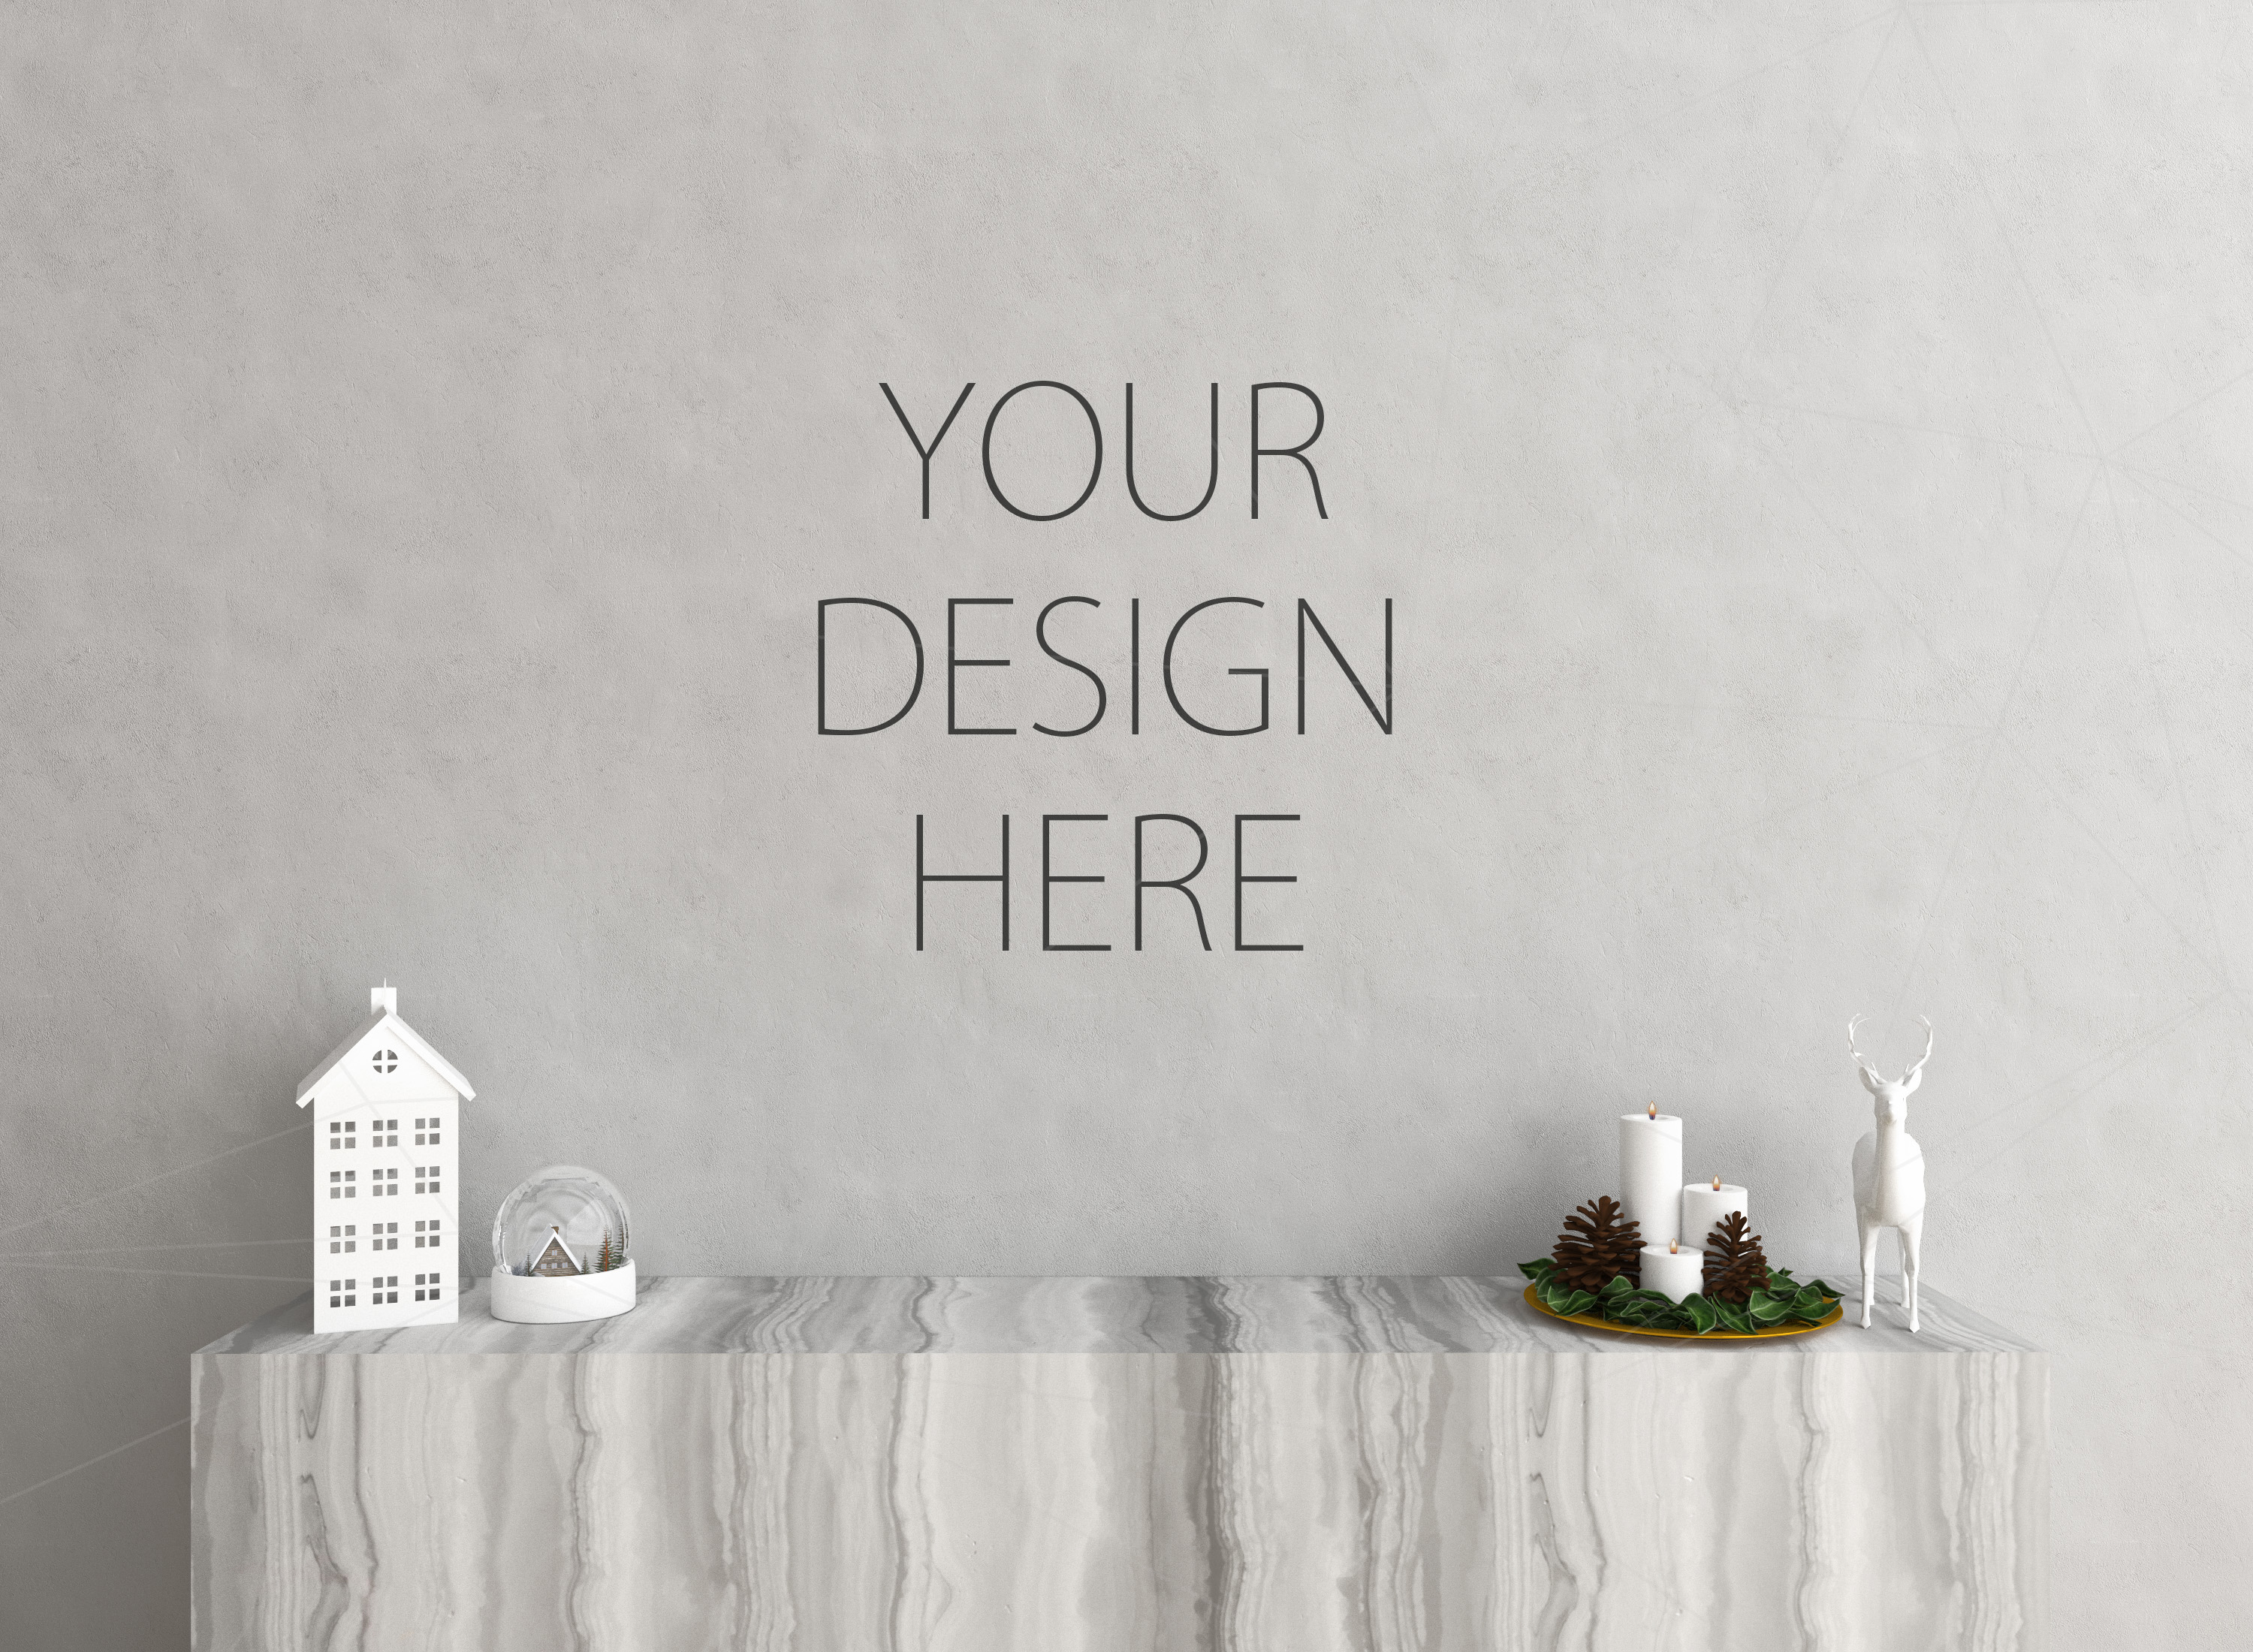 Christmas interior mockup bundle - blank wall mock up example image 2